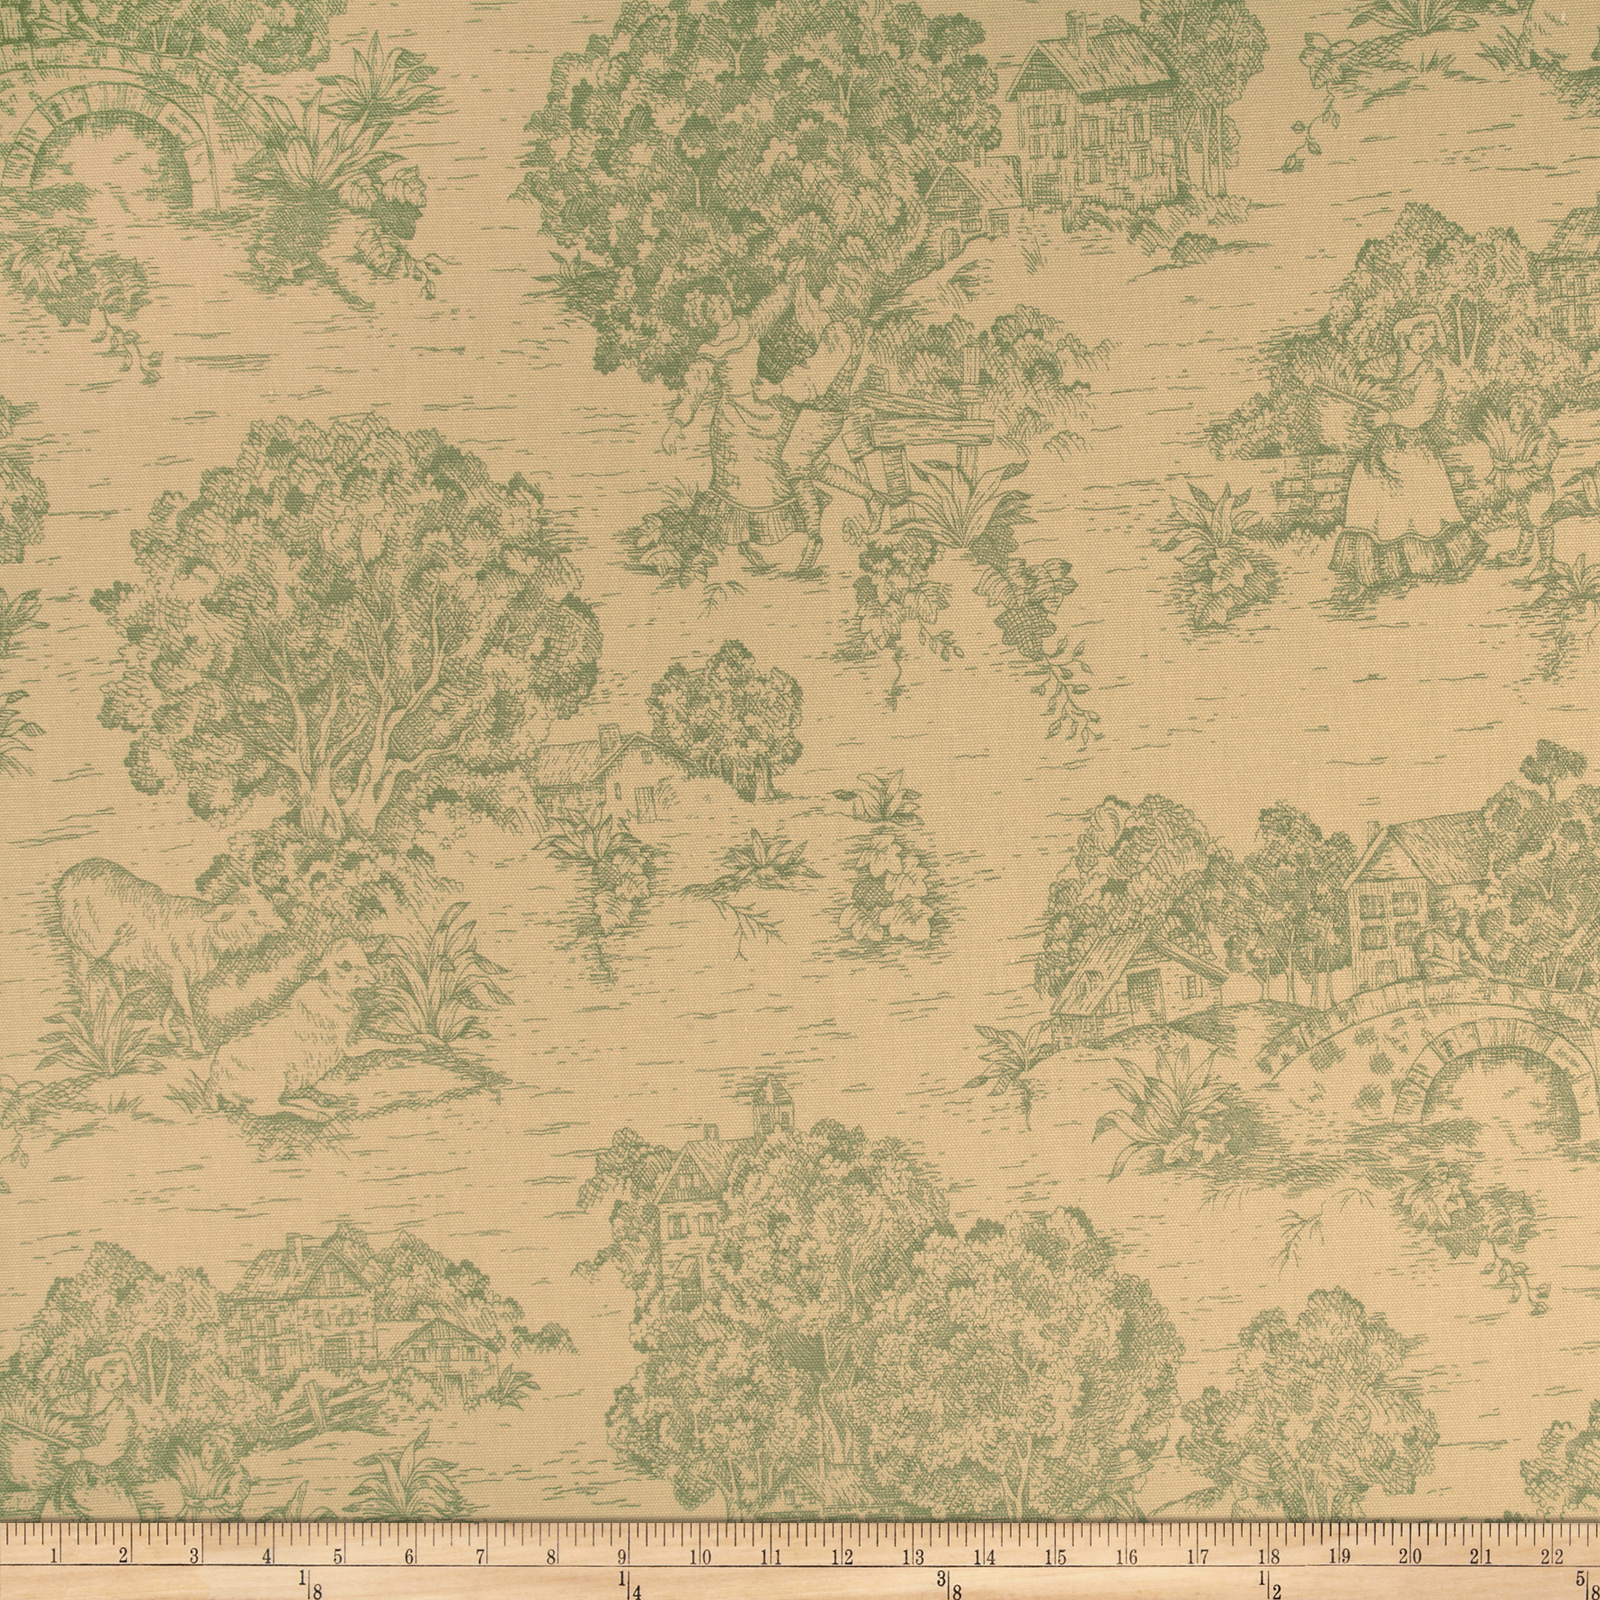 Pastoral Toile Ivory/Tan Cream Fabric